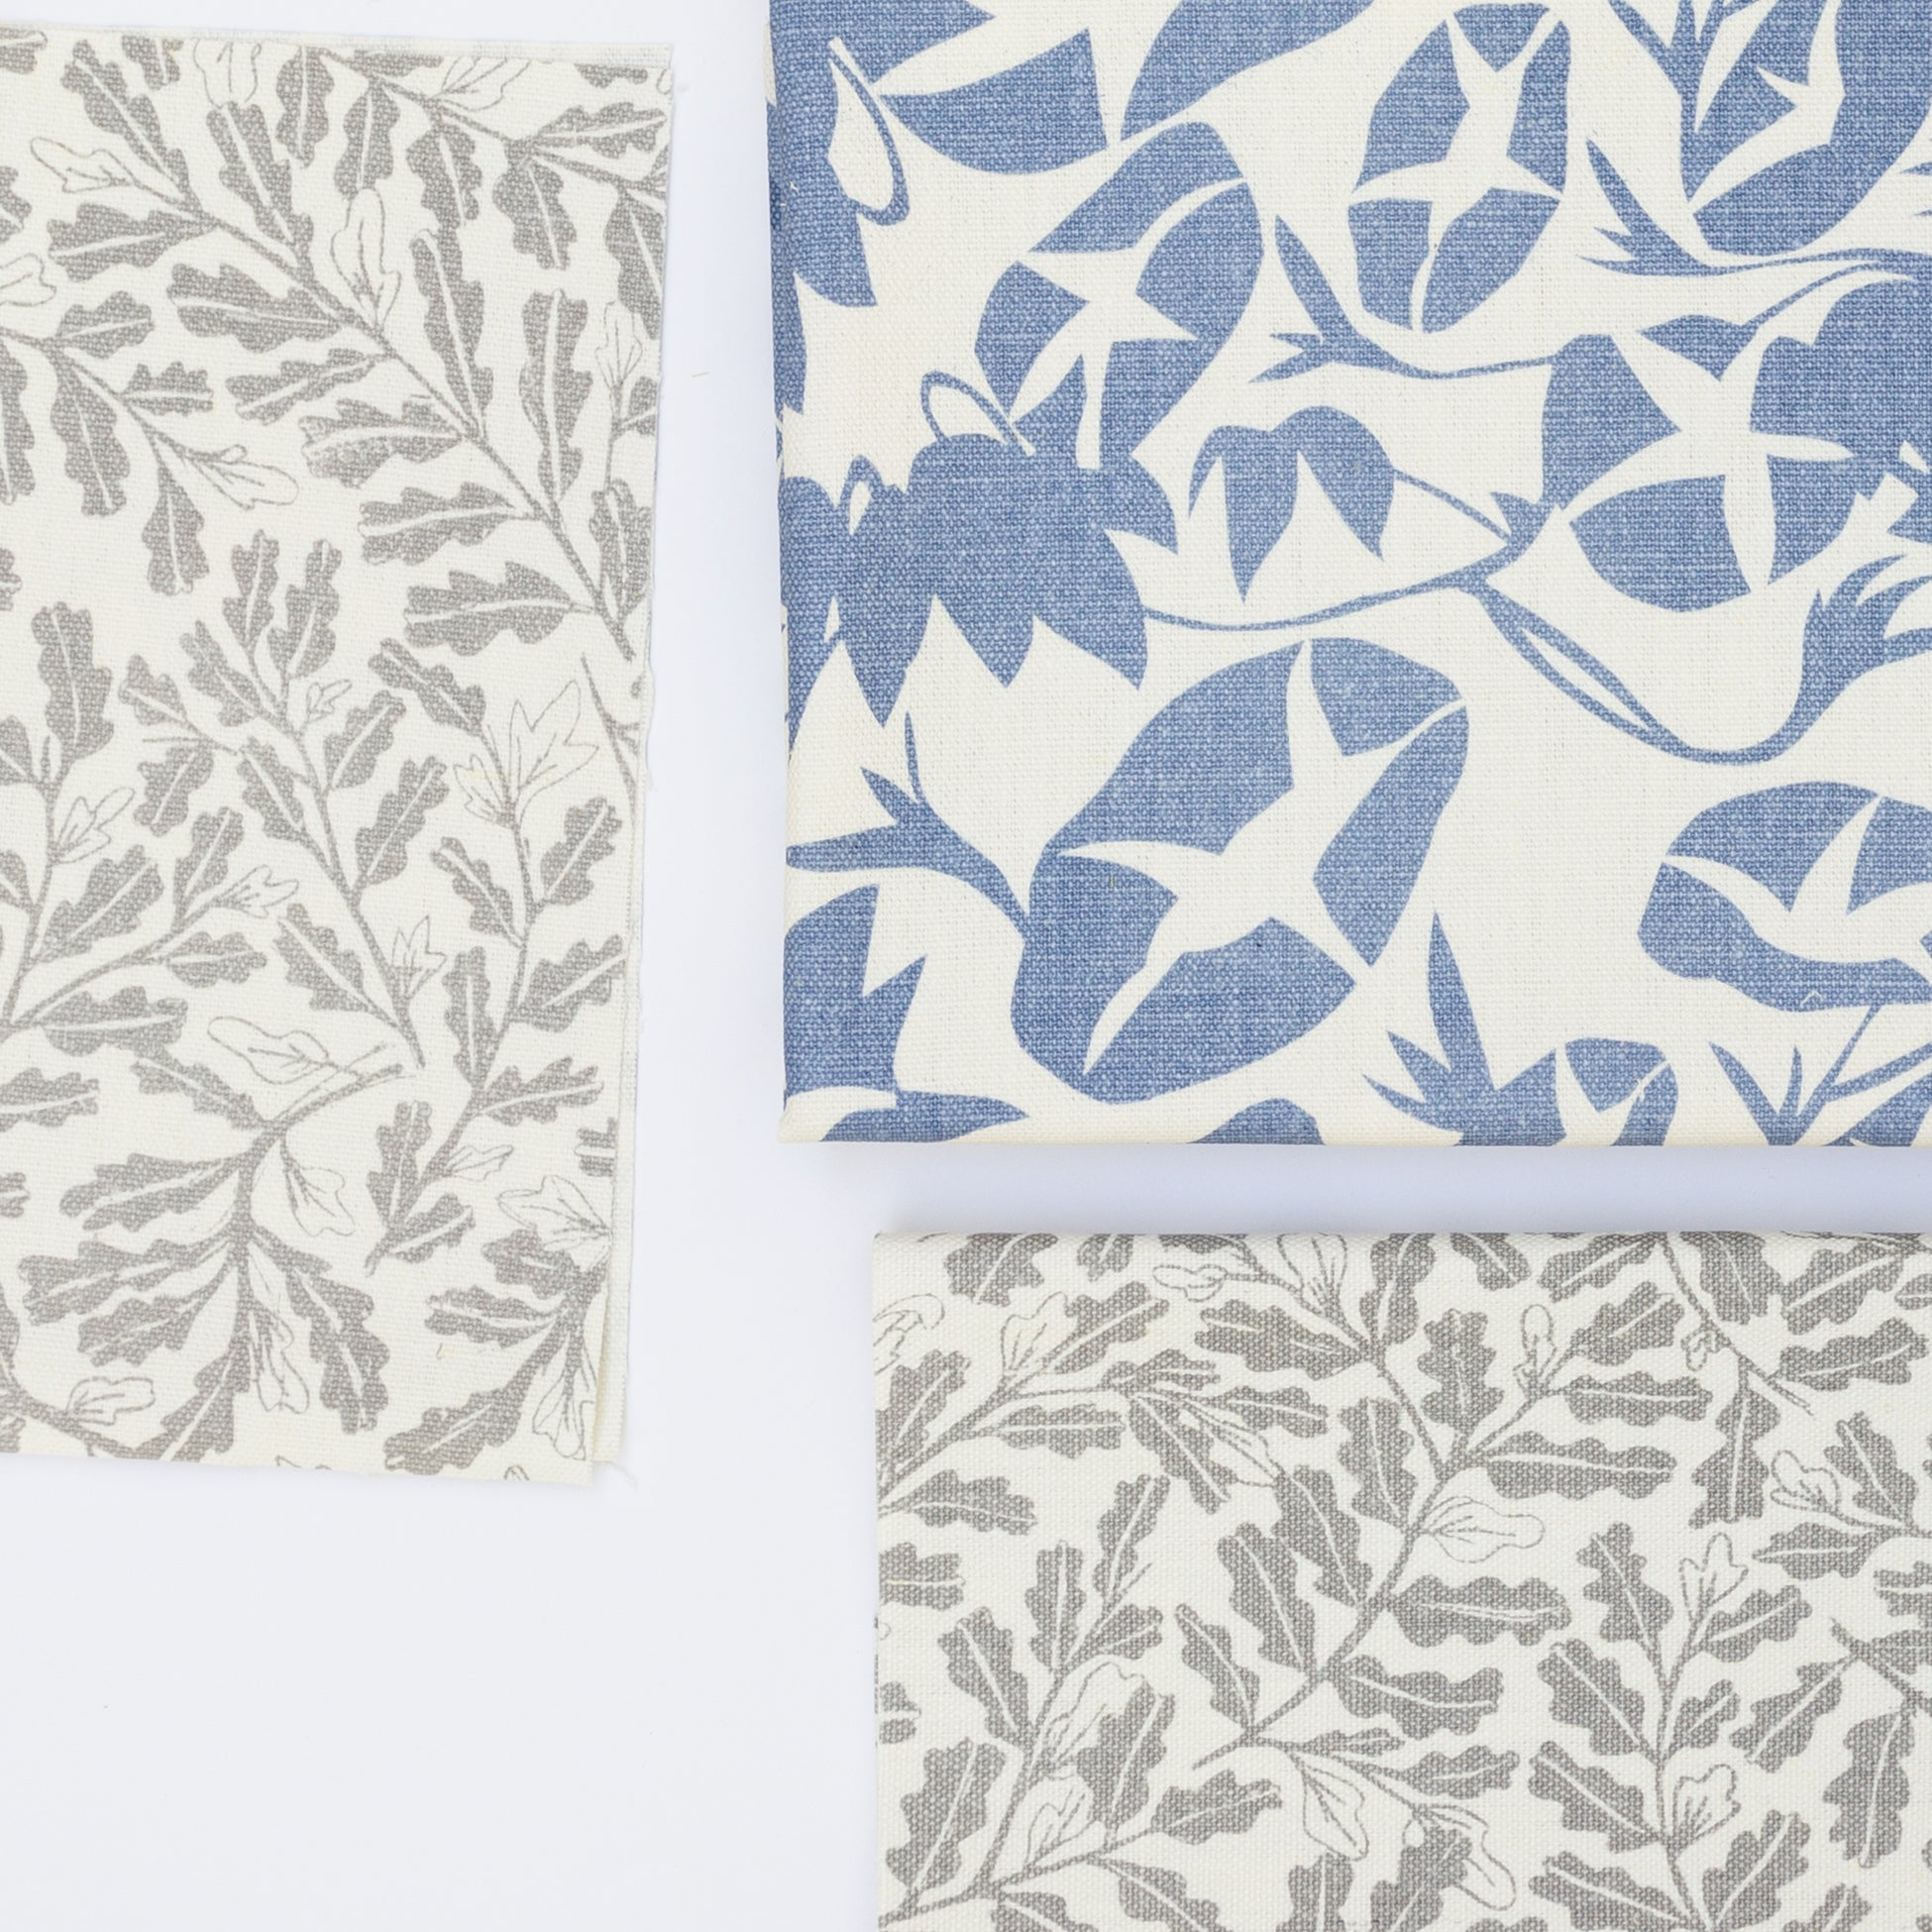 Pre-cut fabric screen printed with botanical illustrations